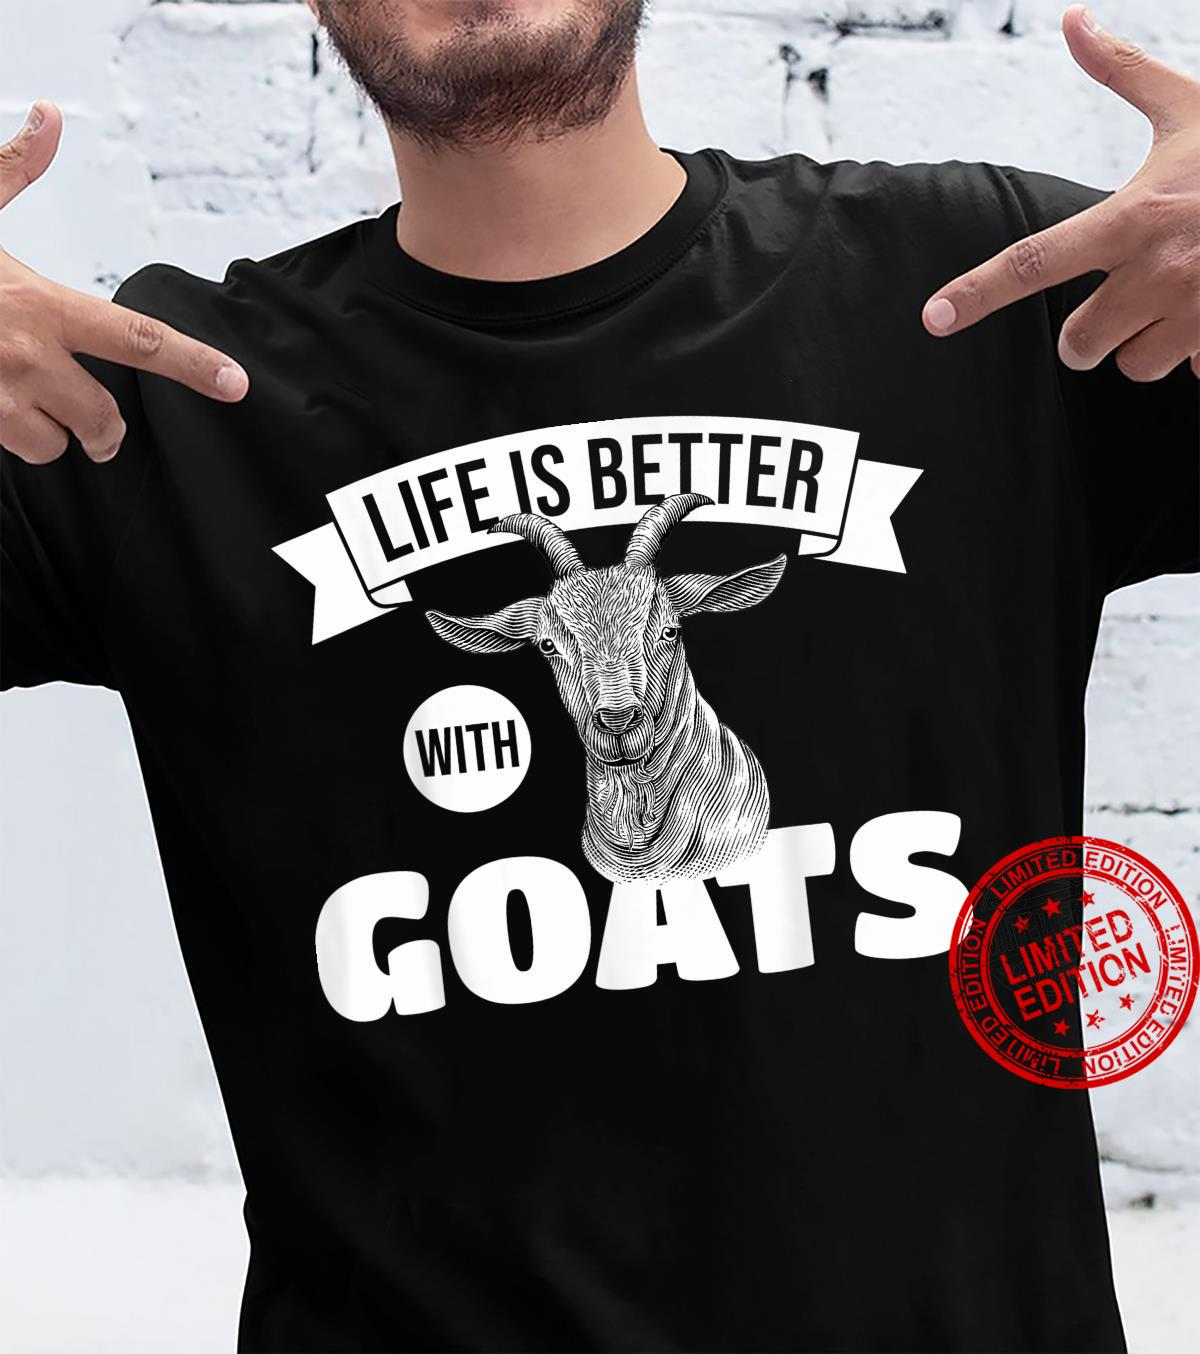 Goats Life Is Better With Goats Goat Farmers Shirt